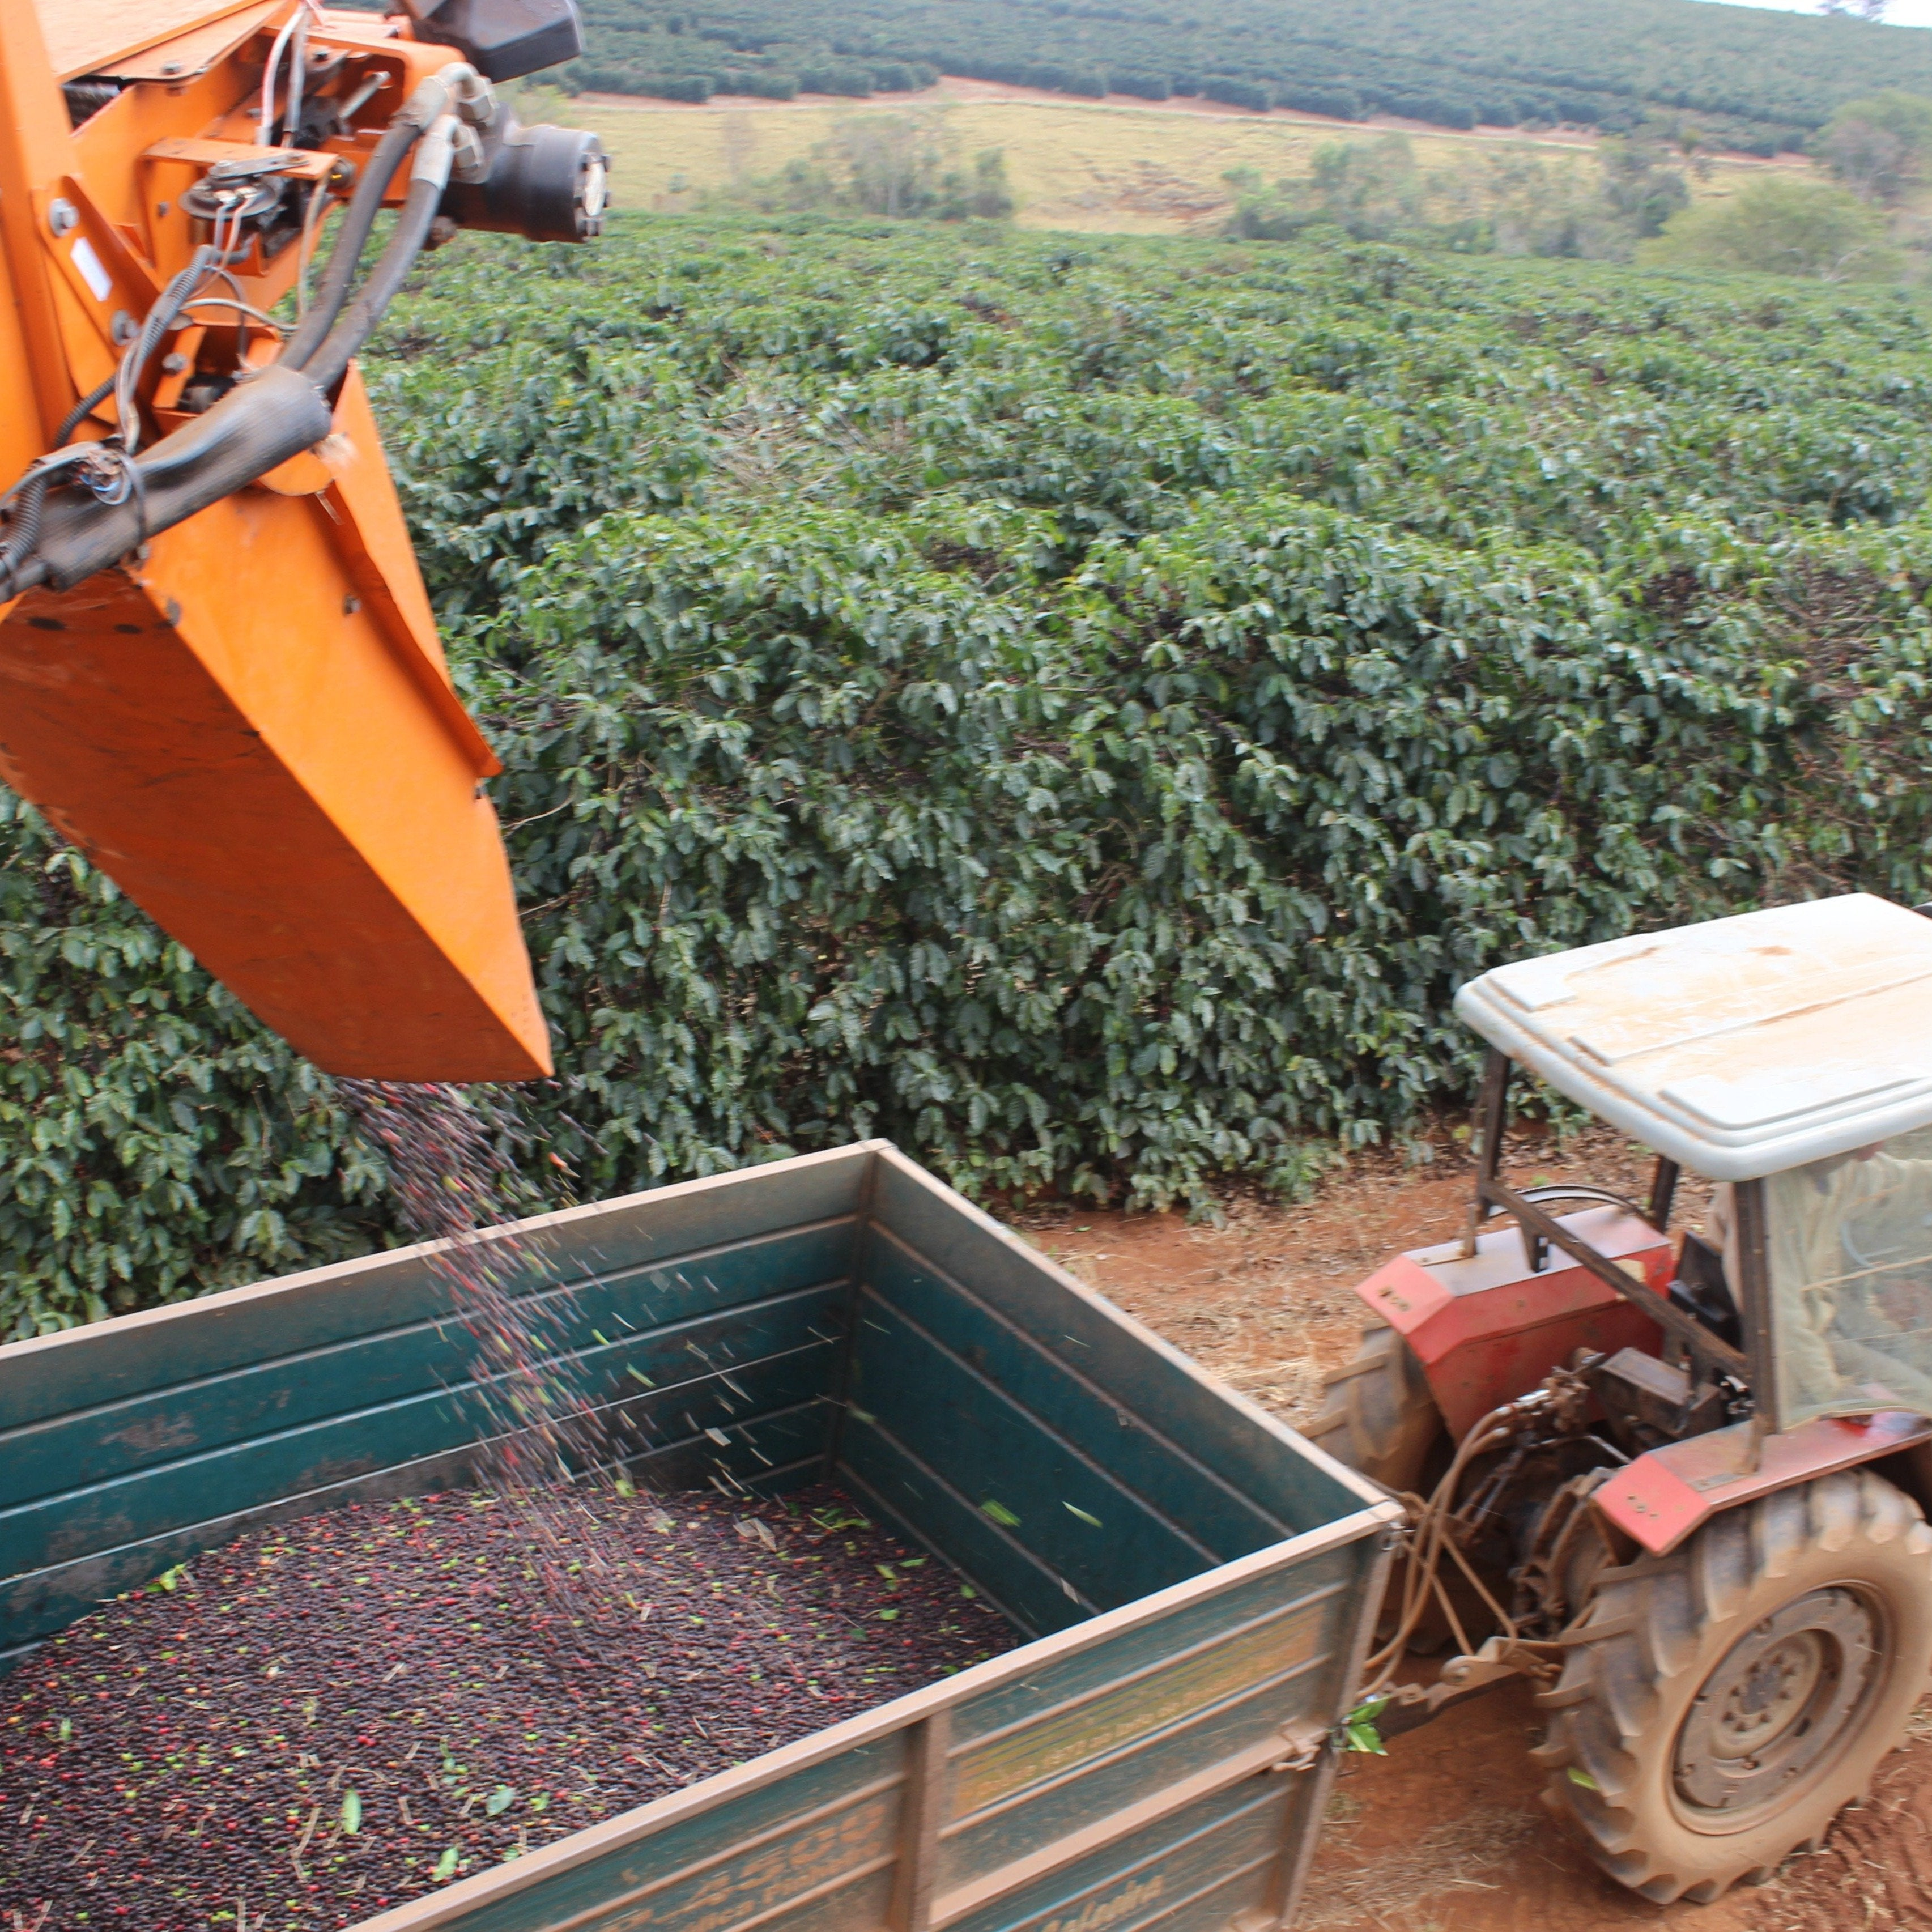 coffee fruit being harvested by machine in Brazil